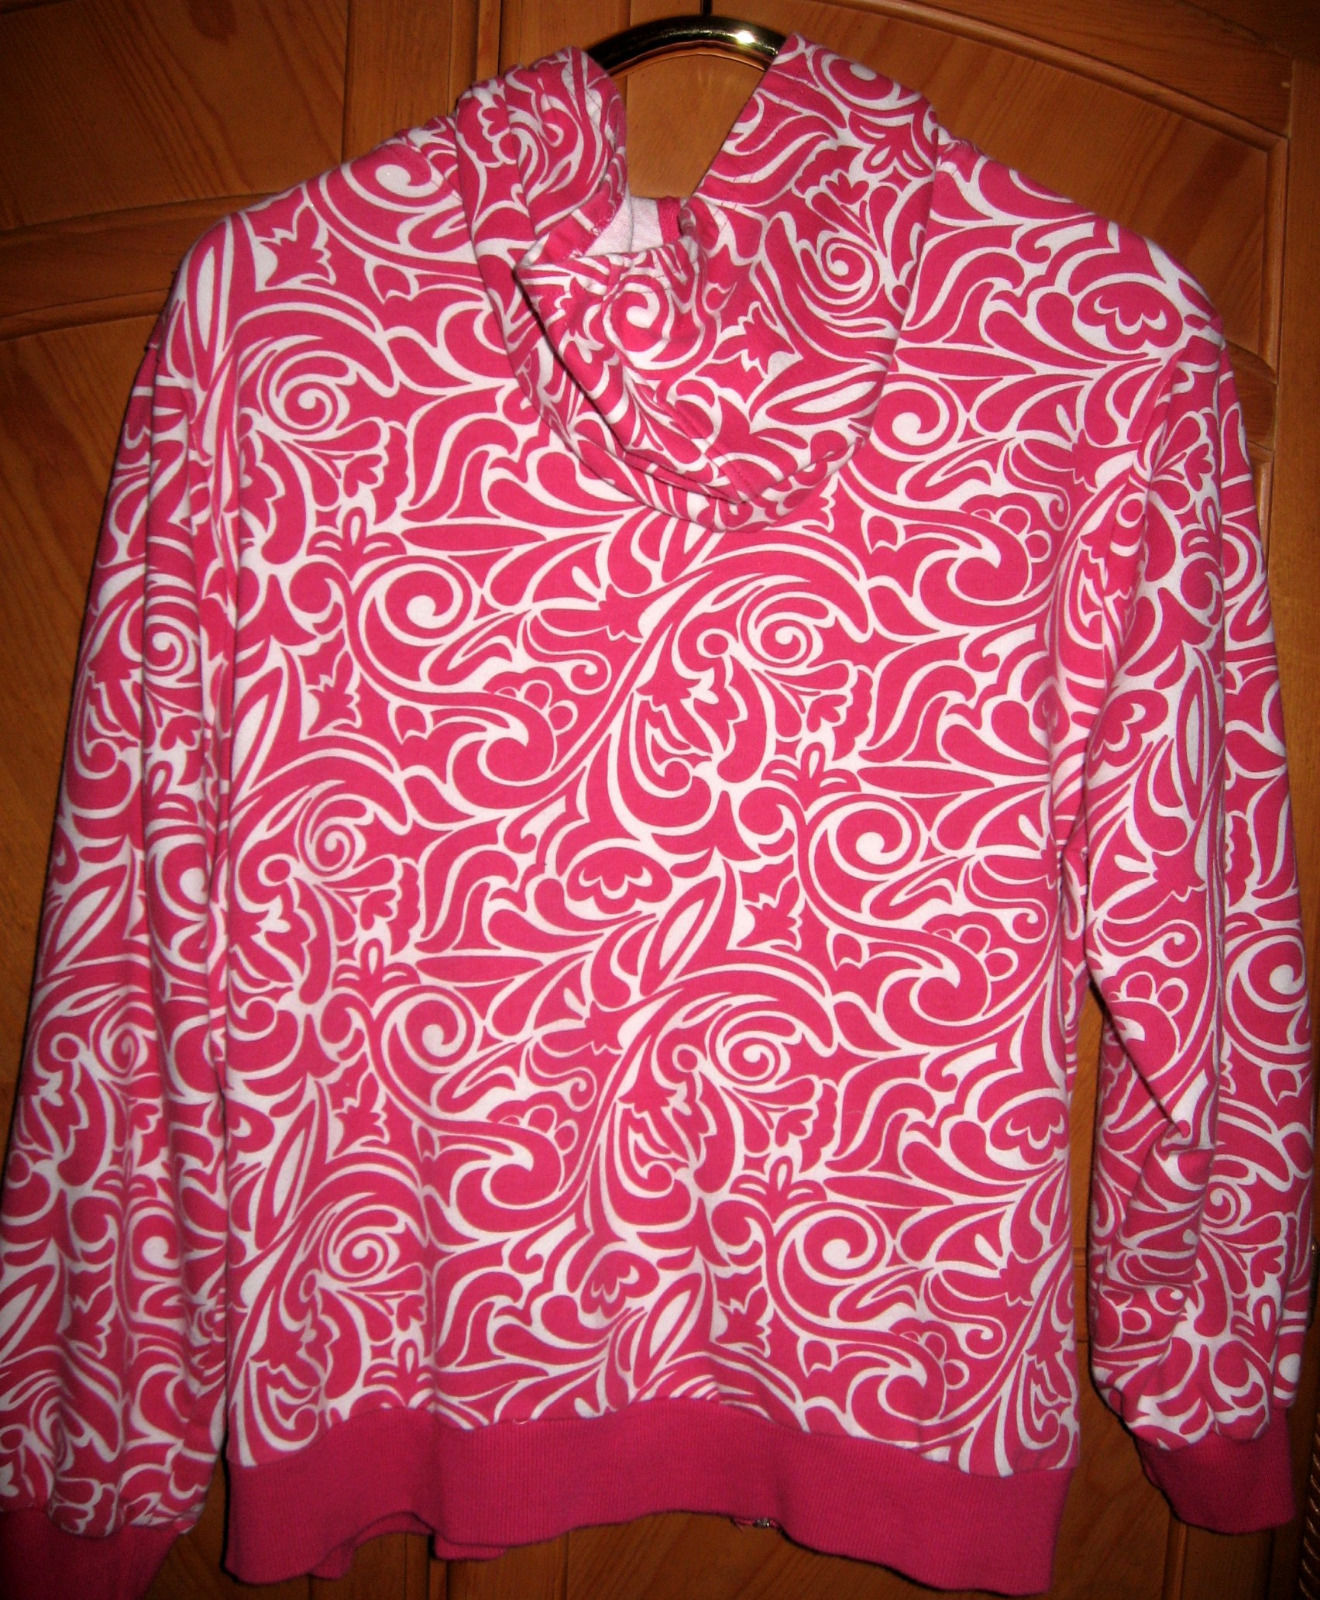 Pink and White Artsy Hooded Sweatshirt/Jacket, 2X, Bust 53""